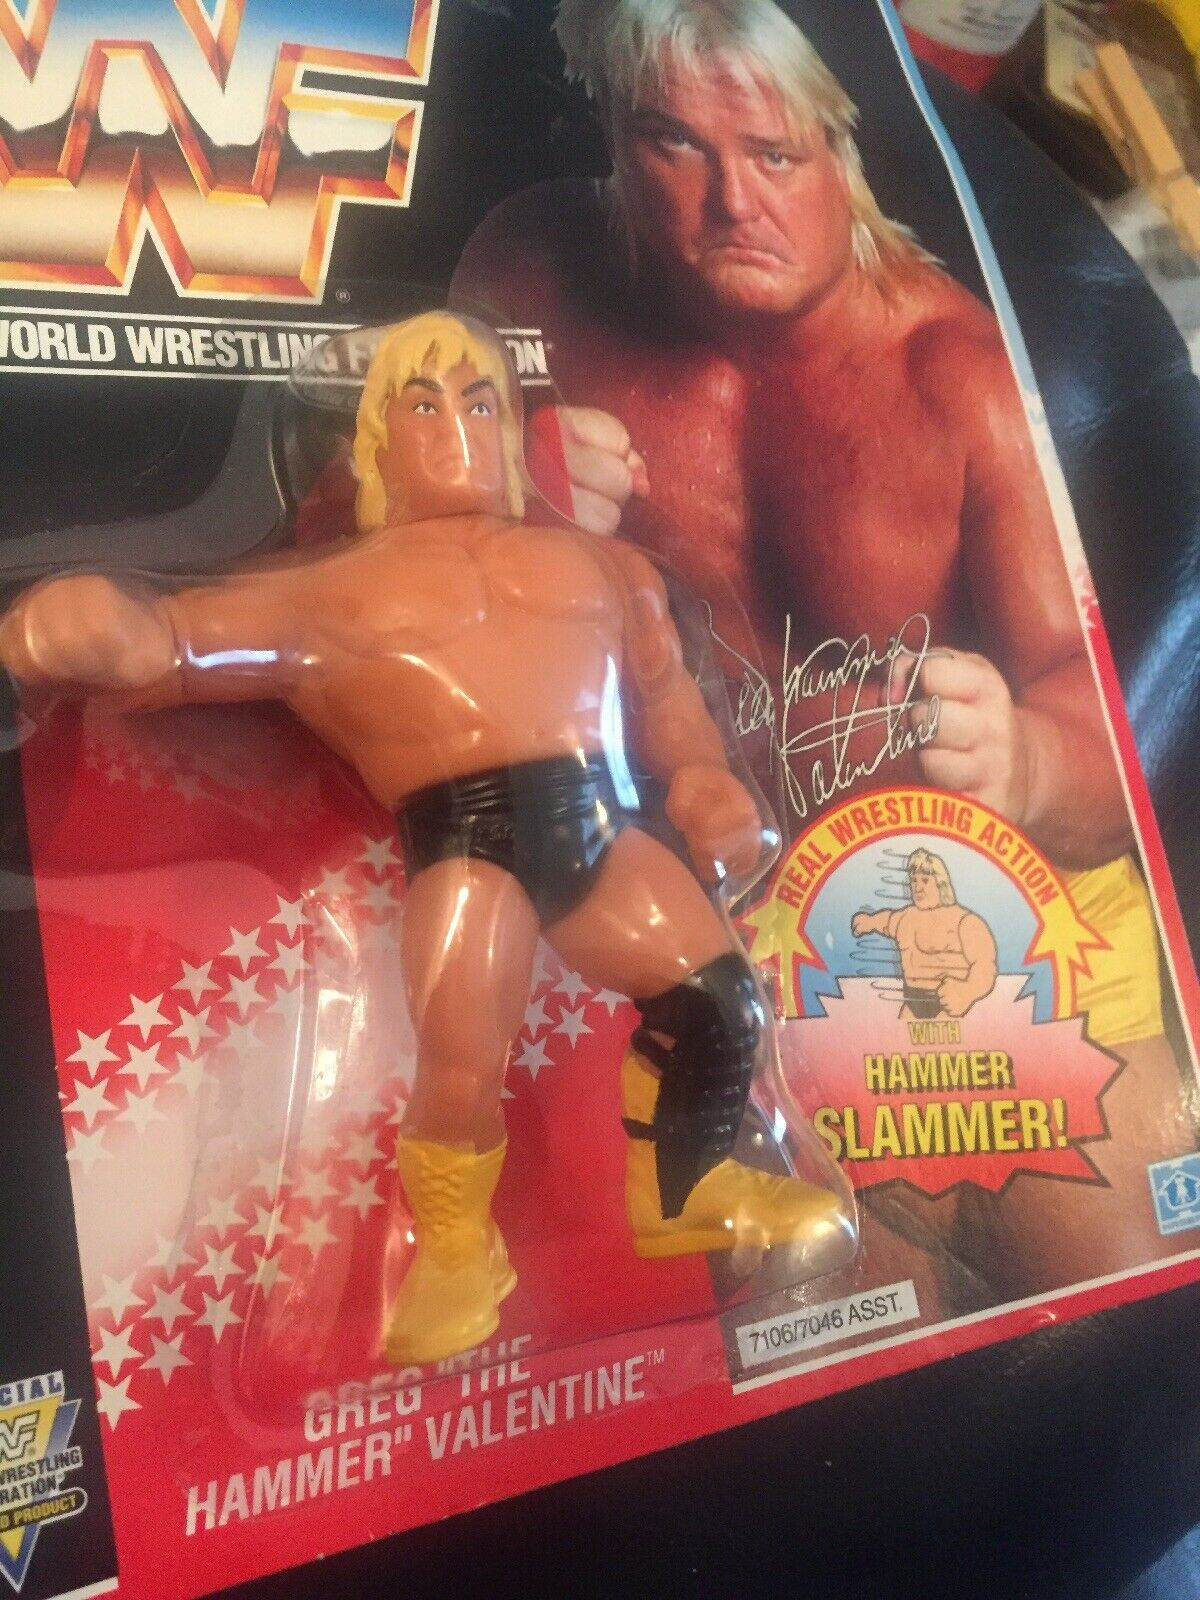 WWF HASBRO GREG THE HAMMER VALENTINE MOC SERIES 3 Brand New